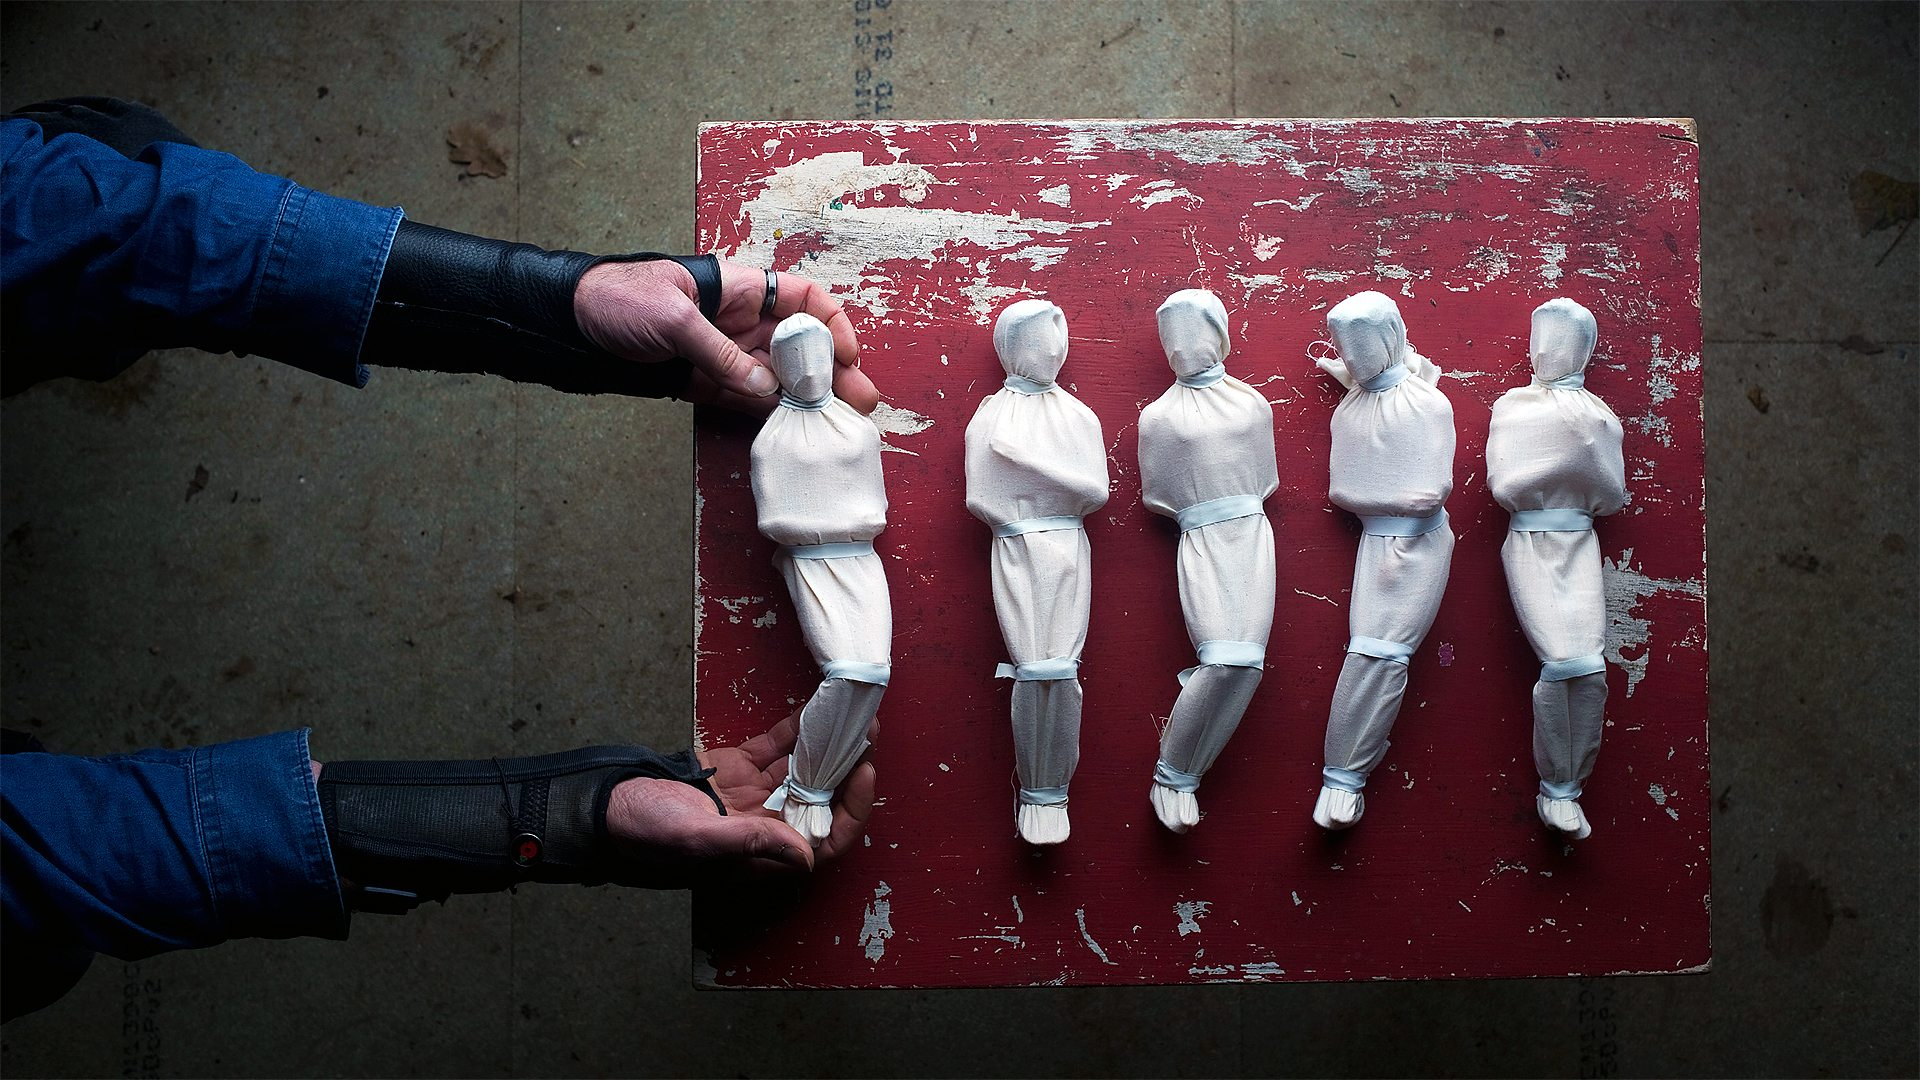 BBC Arts - Shrouds of the Somme: Artist's memorial to war dead